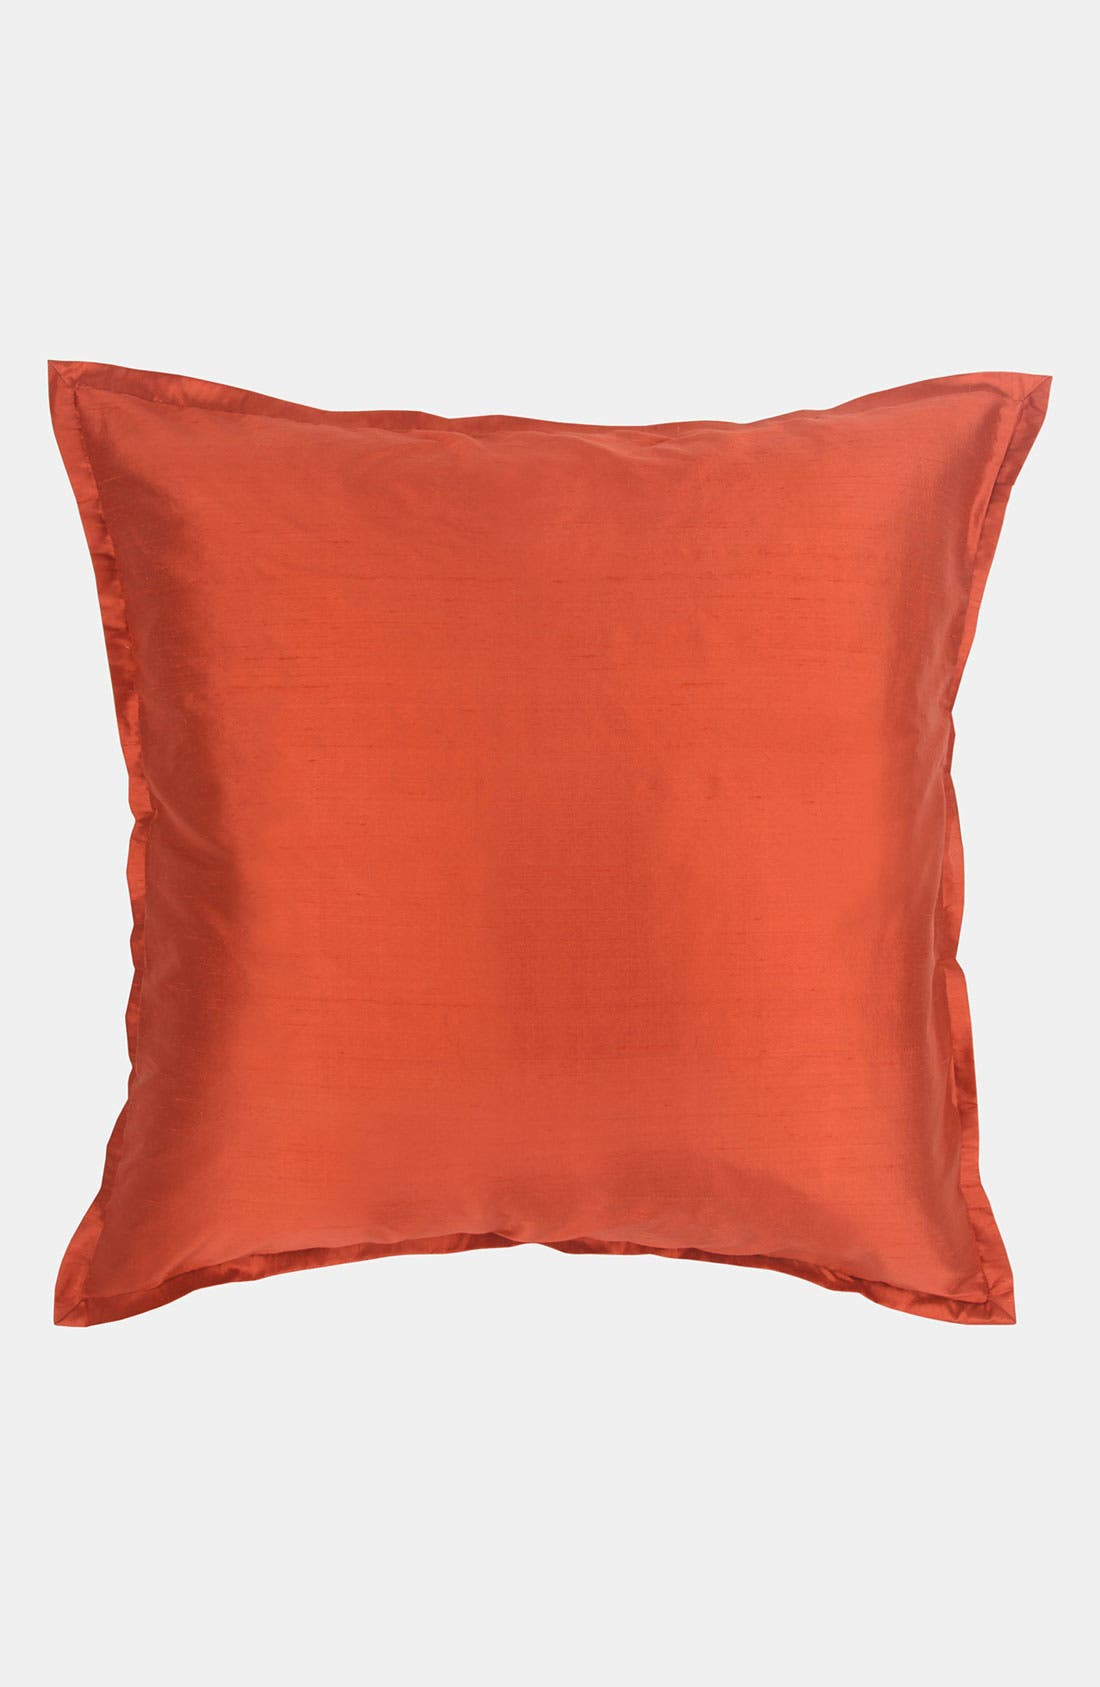 Main Image - Blissliving Home 'Lucca' Euro Pillow (Online Only)